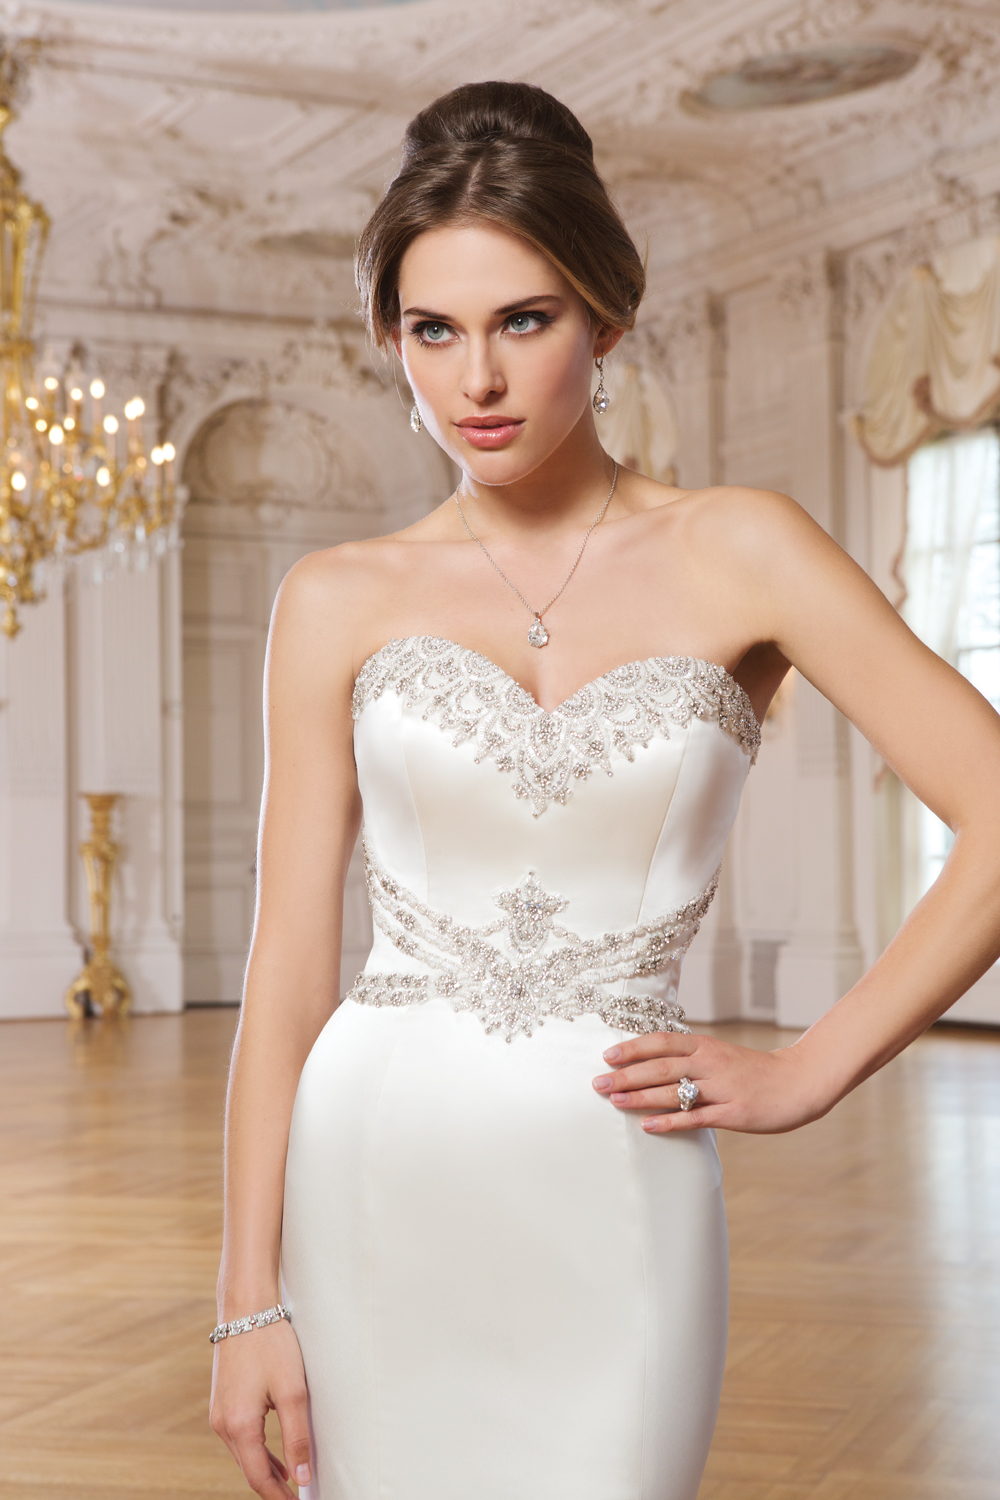 Bridal gown shops in houston tx discount evening dresses for Wedding dress shops in houston tx